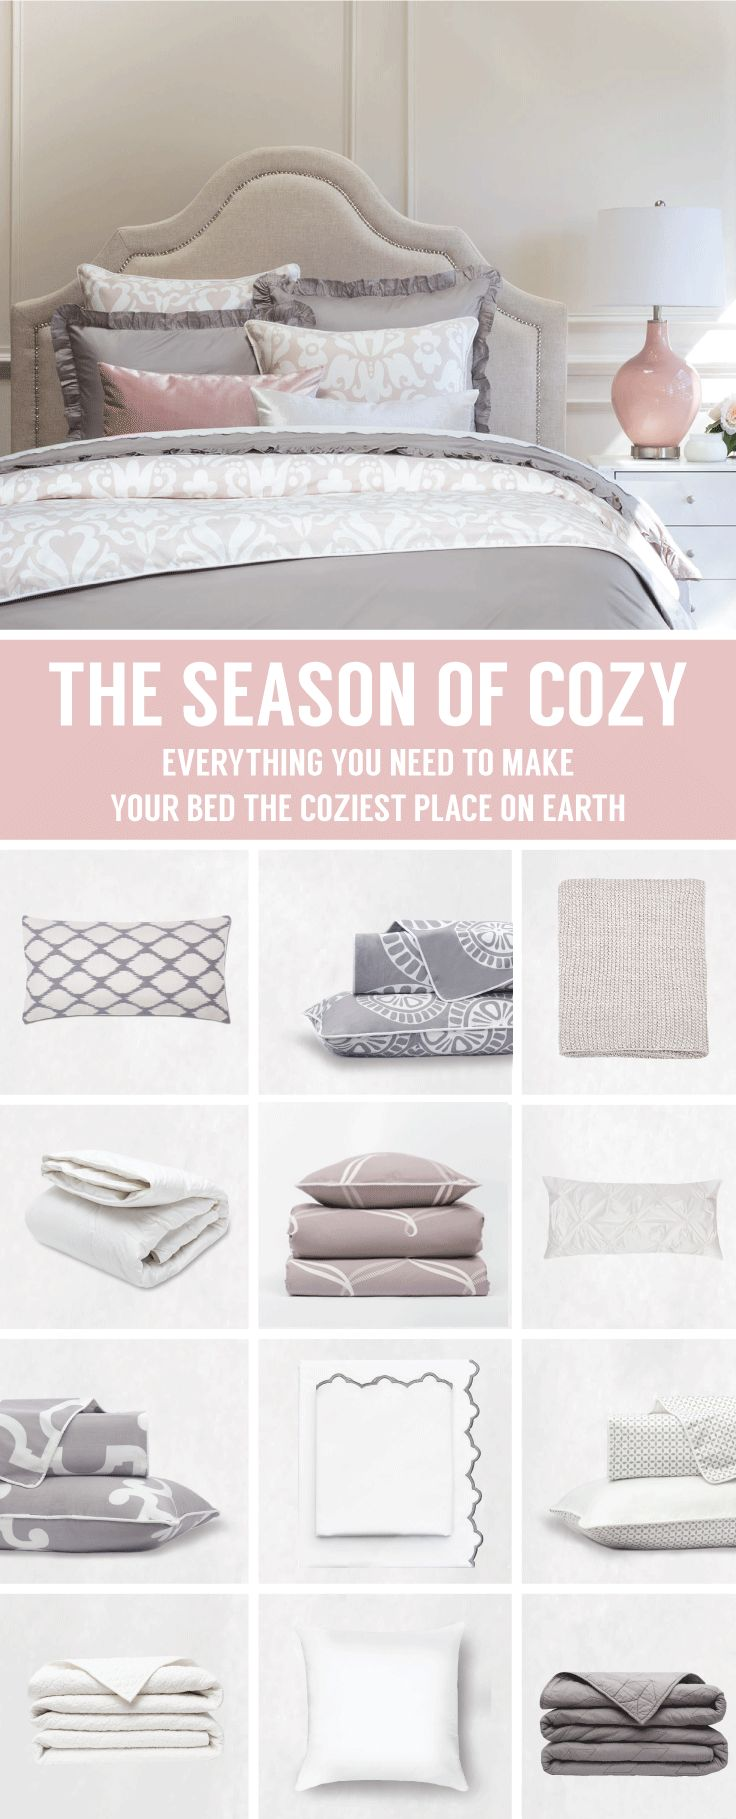 From chic bedding and beautiful statement duvet covers, find the luxury bedding that fits your modern home. Named the best site for bedding by HGTV.